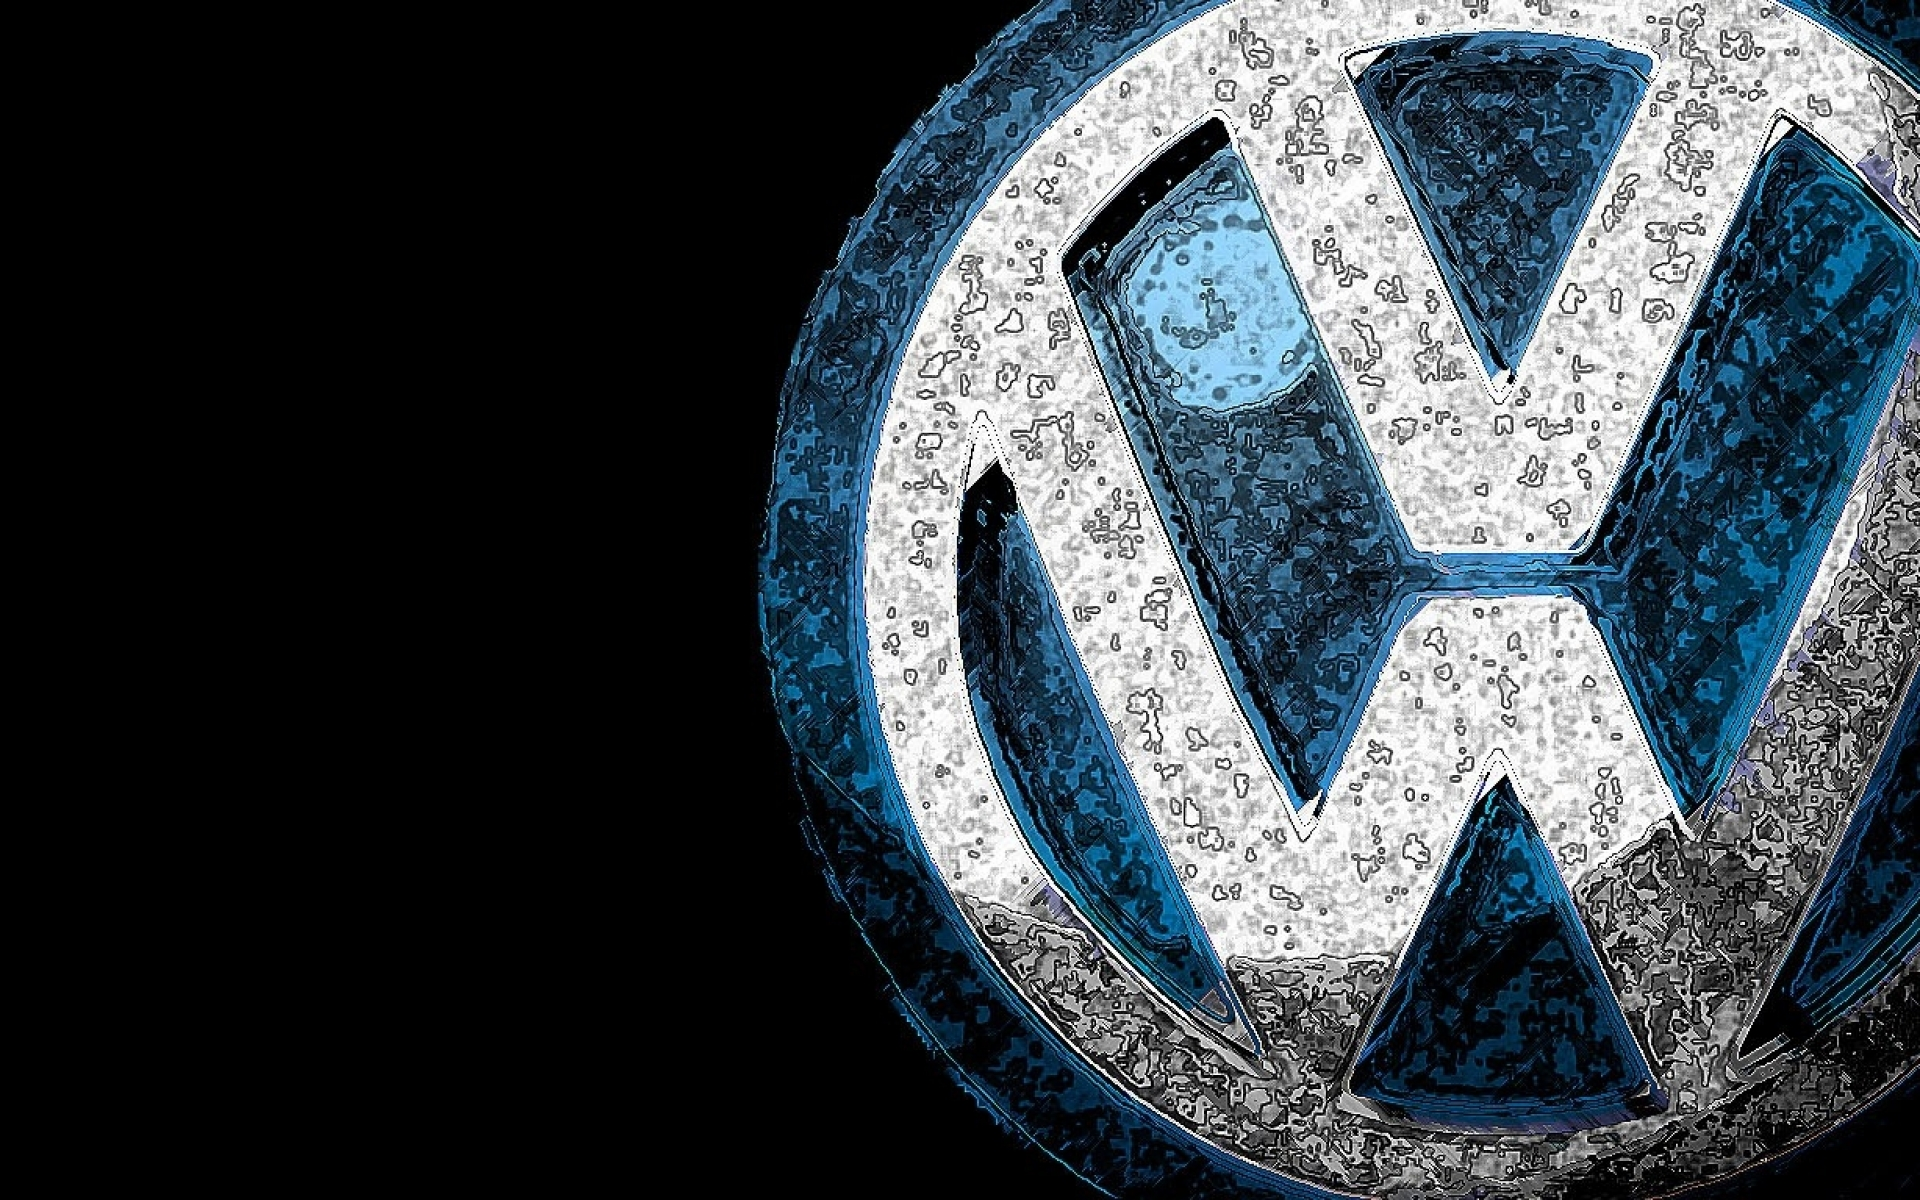 vw logo wallpaper wallpapersafari. Black Bedroom Furniture Sets. Home Design Ideas